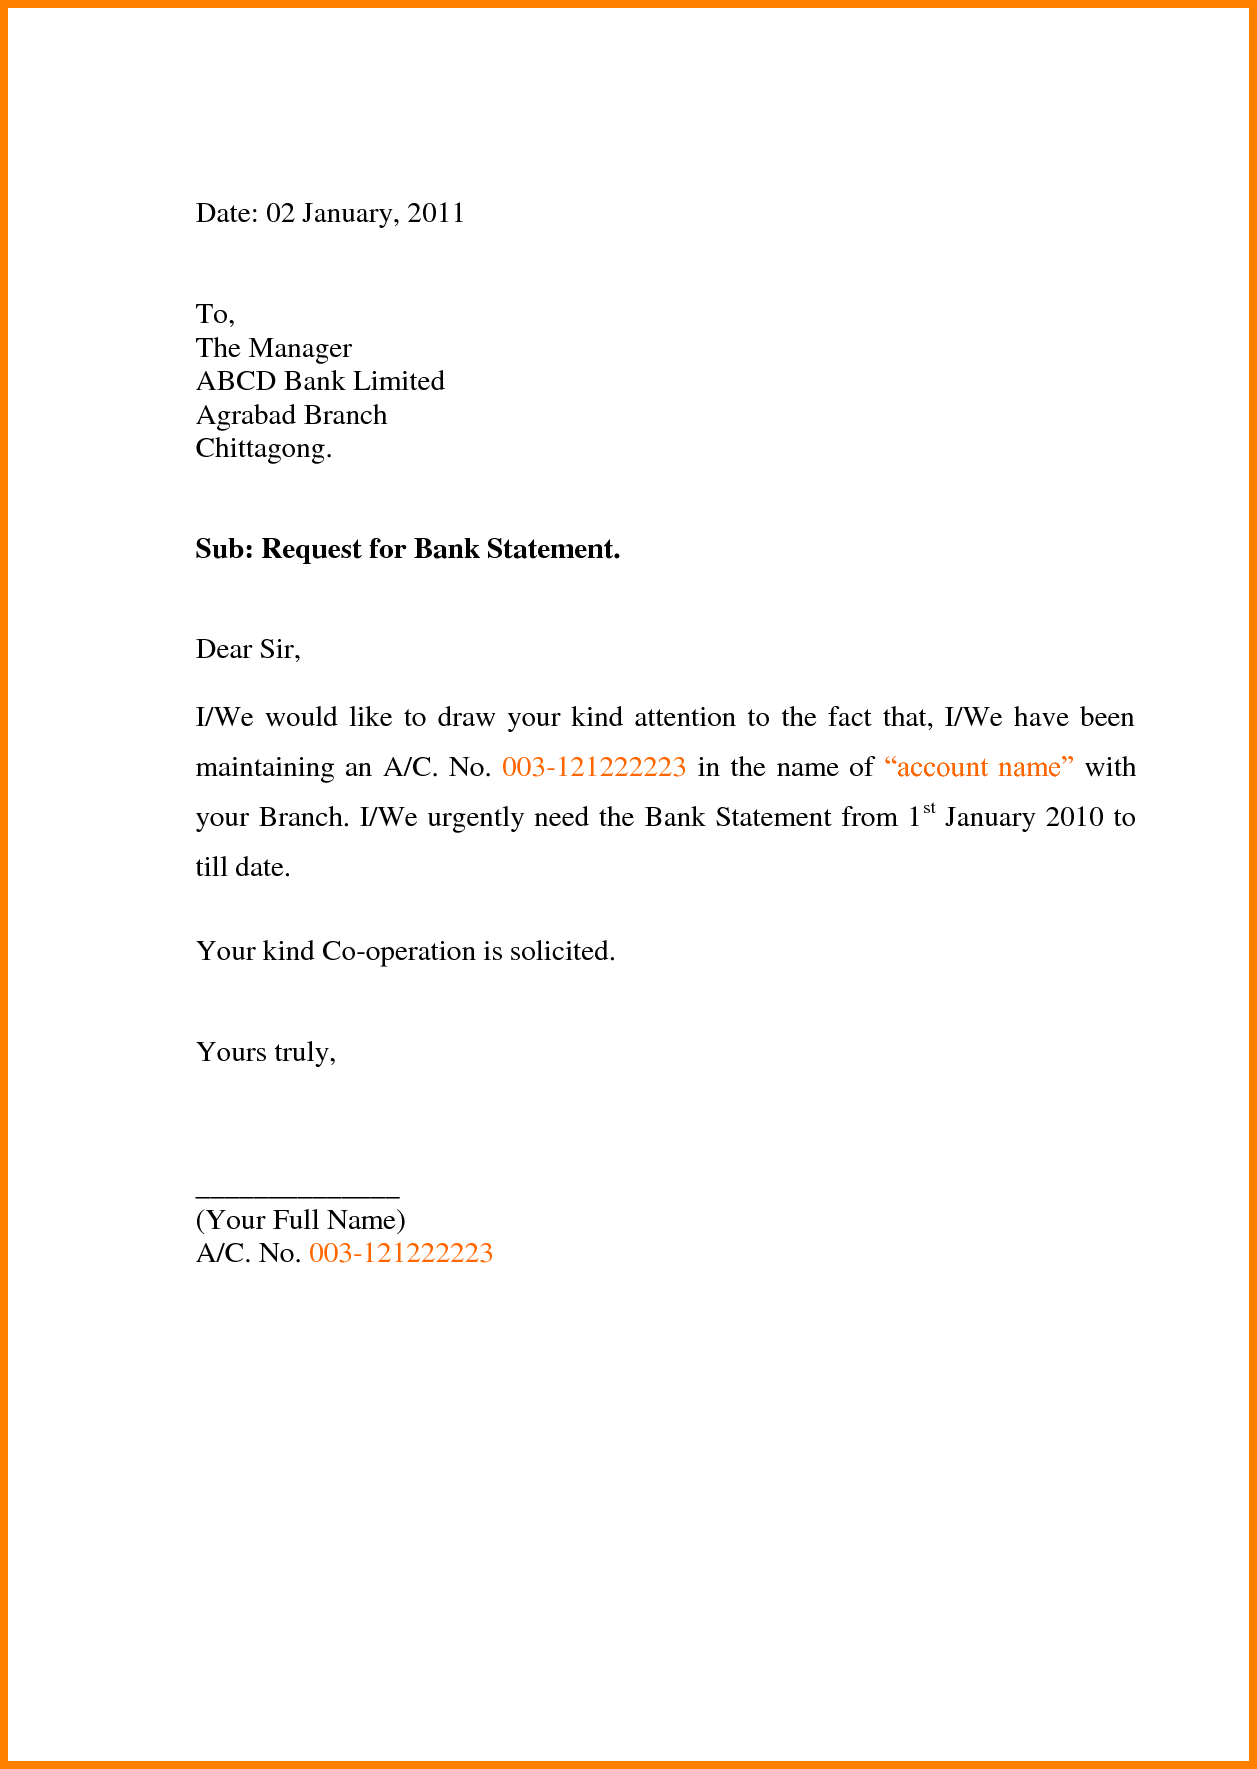 how to write application letter bank request statement shishita sample letter requesting bank